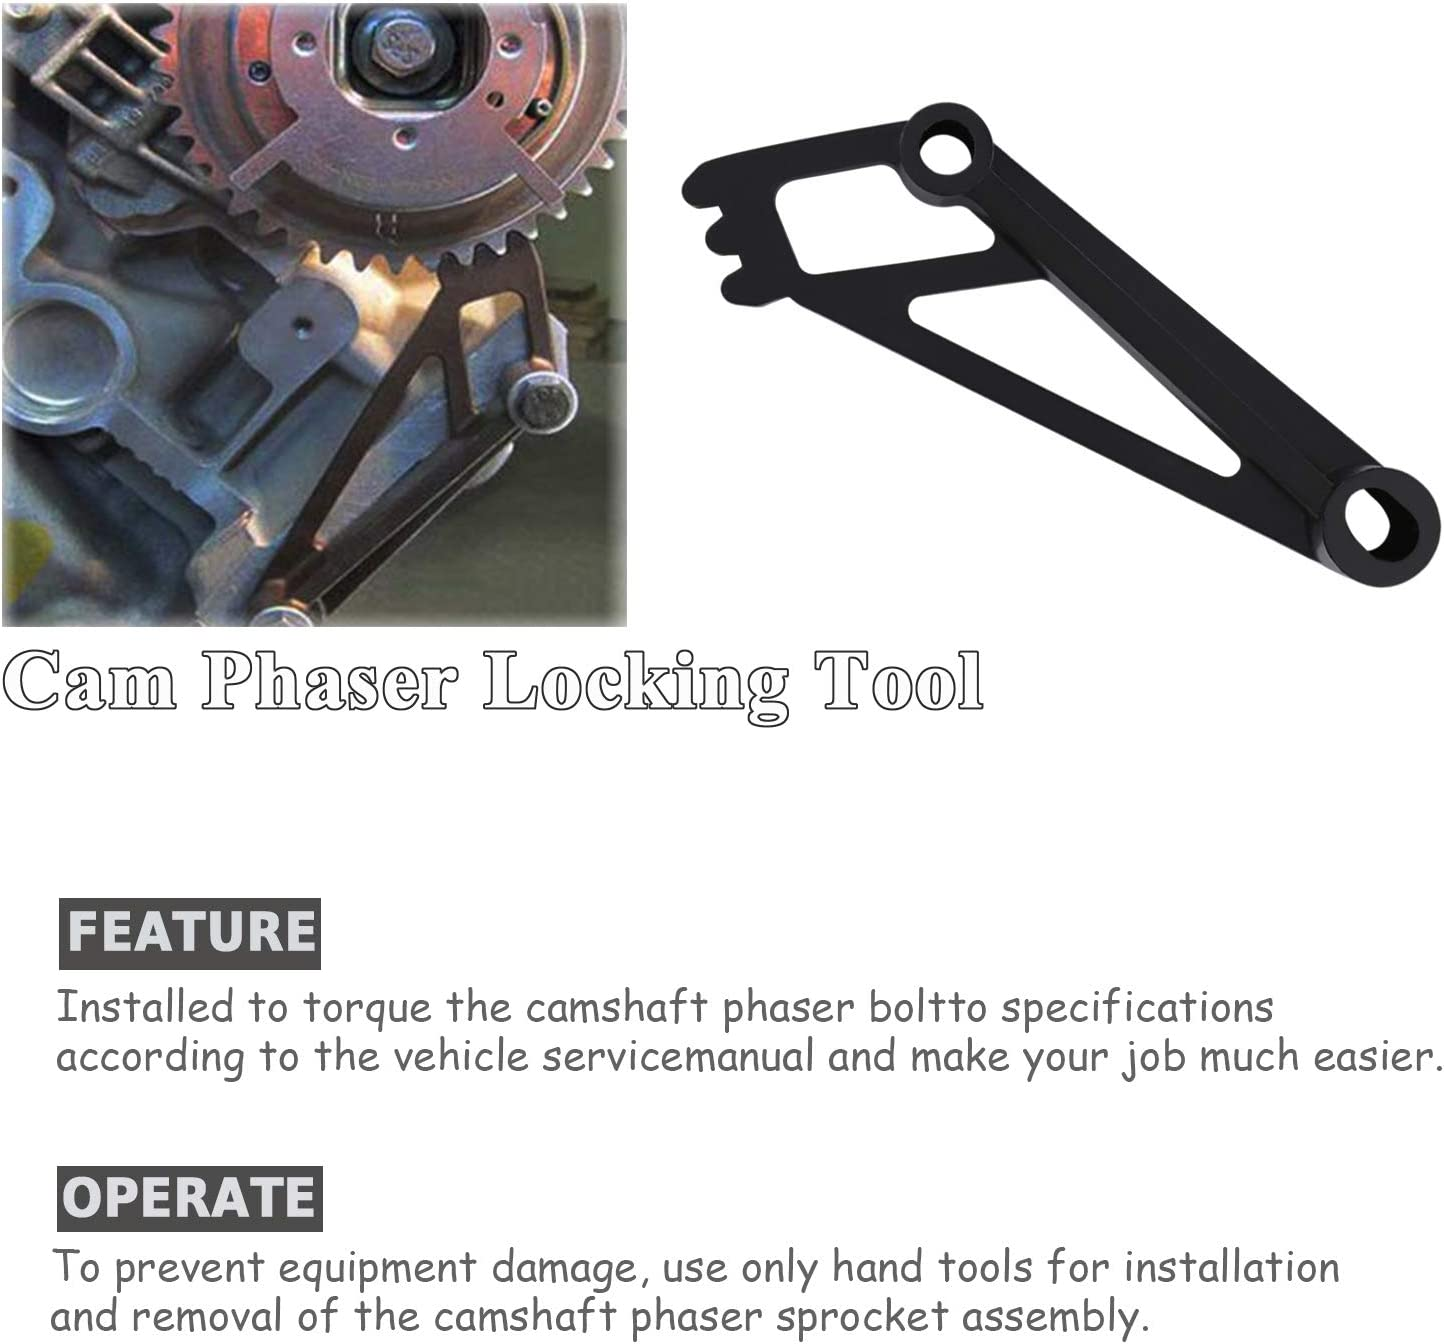 Crankshaft Positioning Tool Valve Spring Compressor for Ford 4.6L//5.4L//6.8L 3V Engines Repair Tools Kit Cam Phaser Holding Tool and Timing Chain Locking Wedge Tool with Lockout /& Pulley Bolt